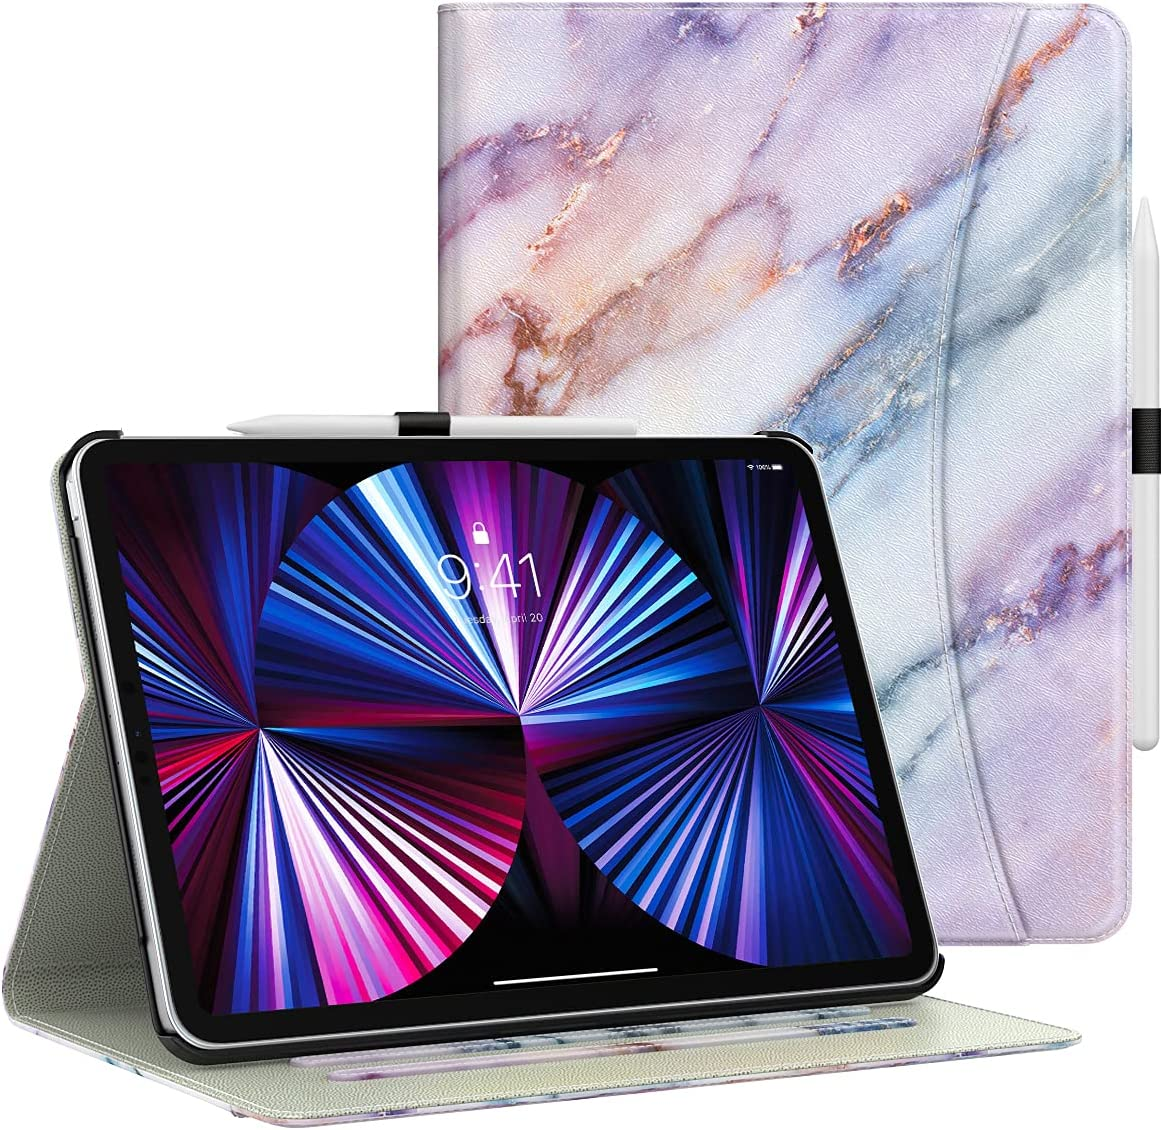 Dadanism Case for New iPad Pro 11 inch Case 2021 (3rd Gen) / 2020 (2nd Gen) / 2018 [Multi-Angle Viewing Stand] Lightweight Protective Cover for iPad Pro 11